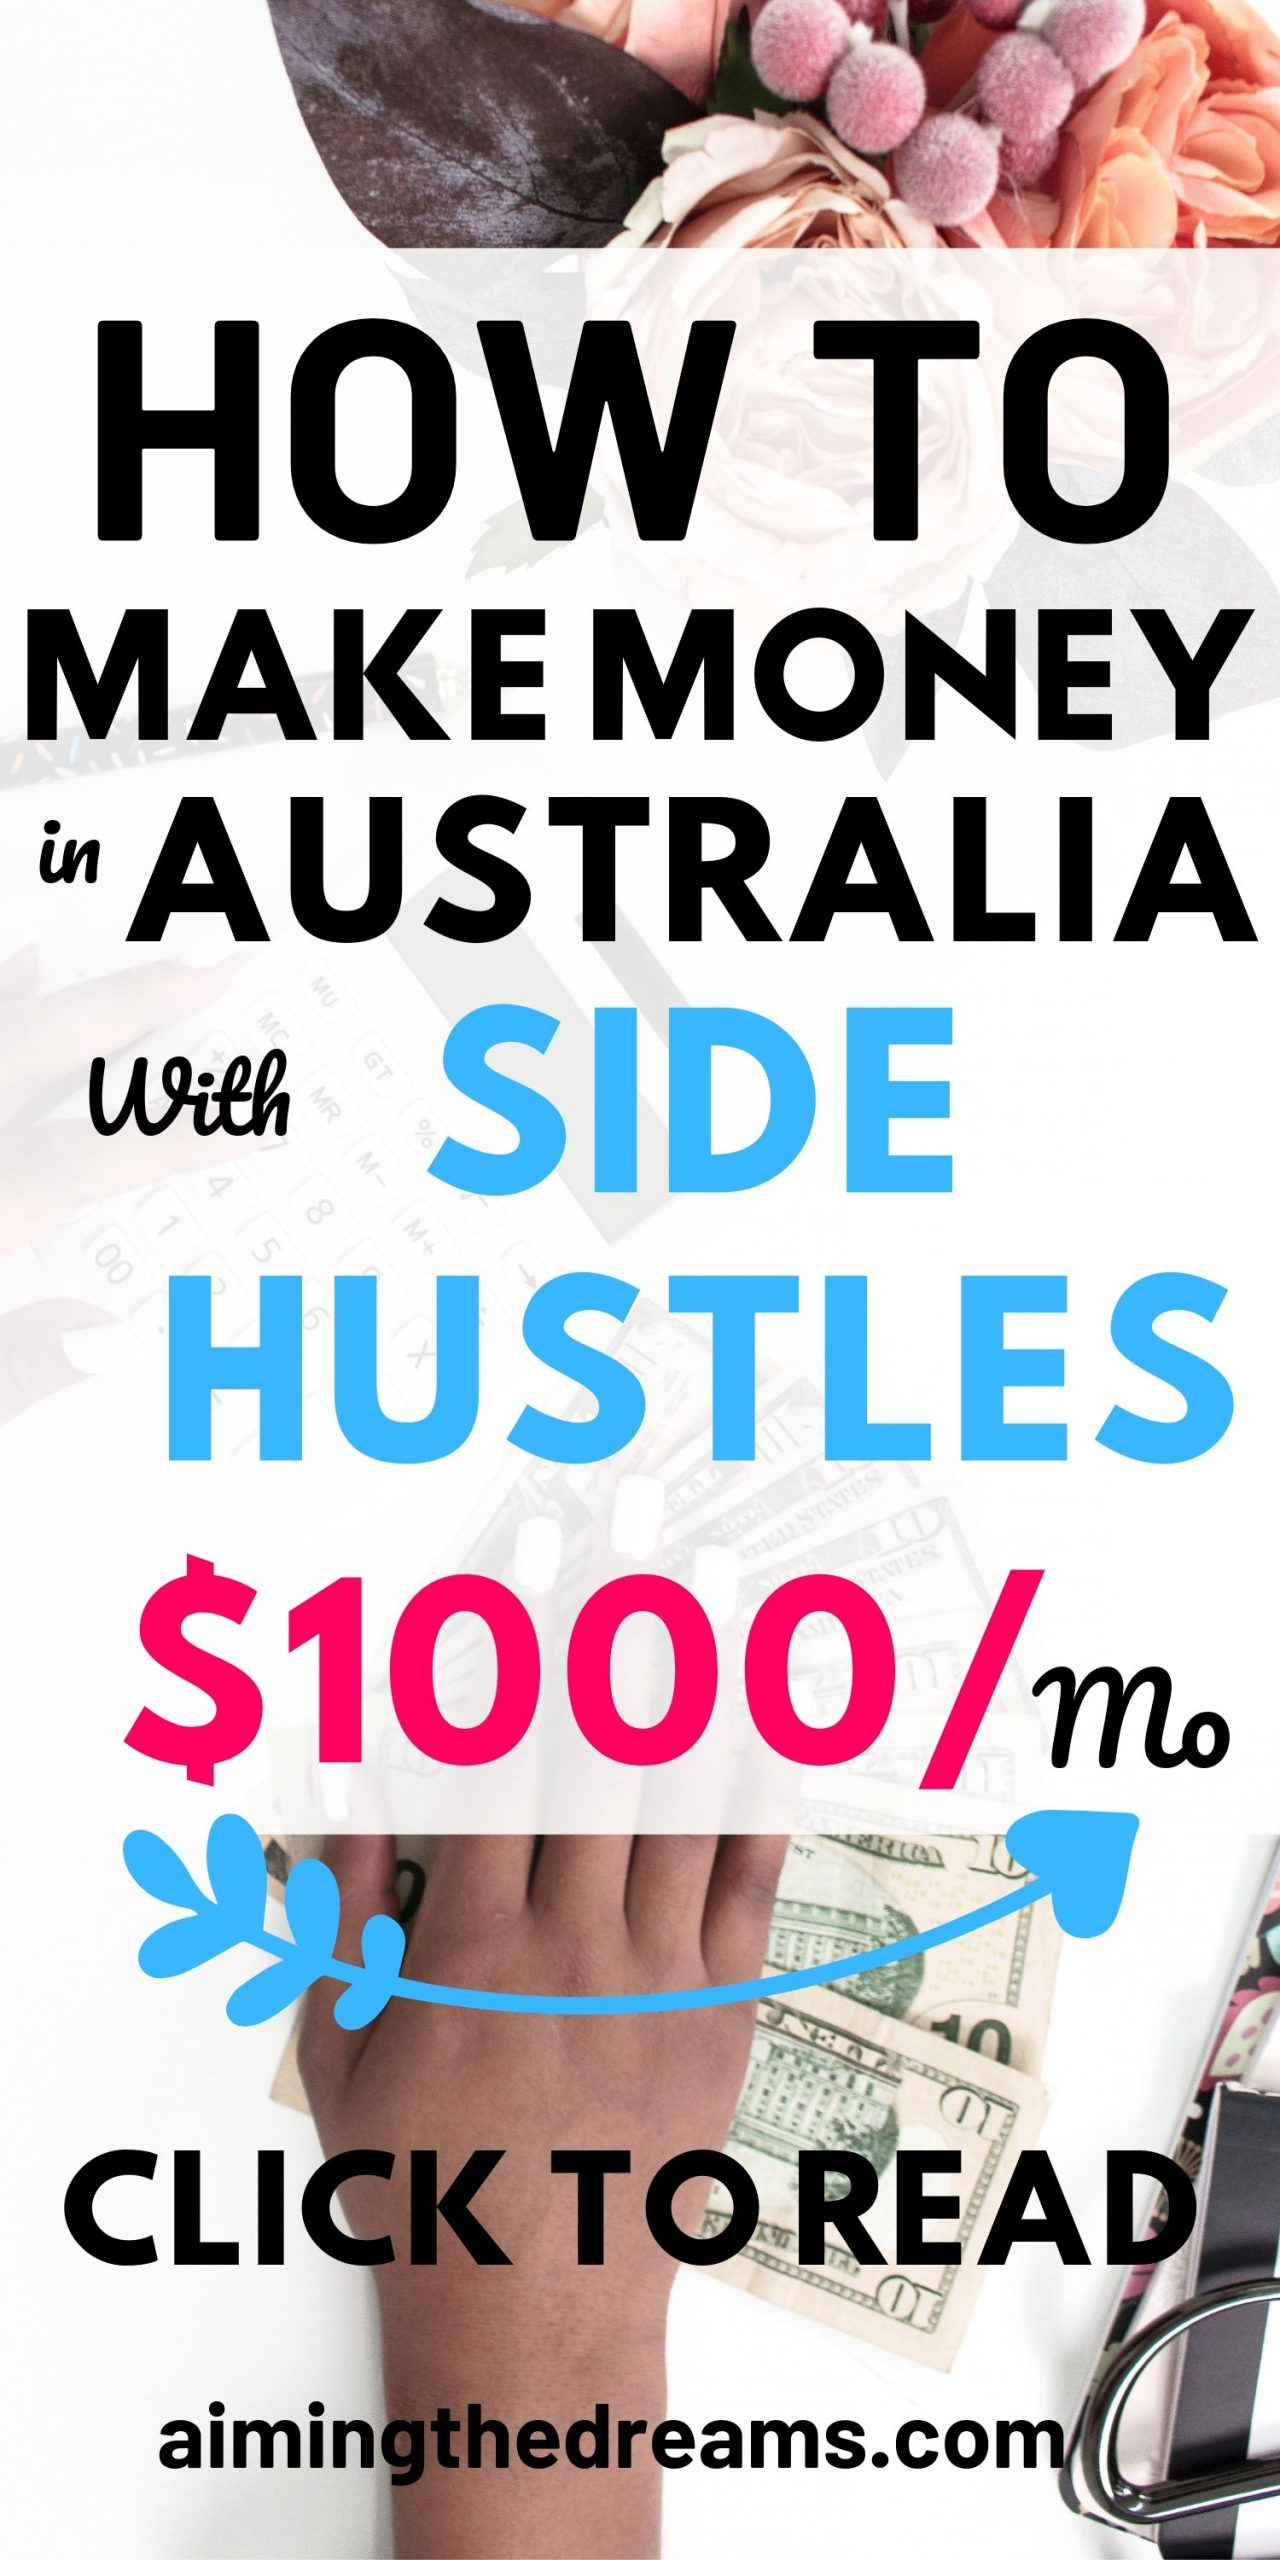 Make money with side hustles. These will let you make money online and work from home.